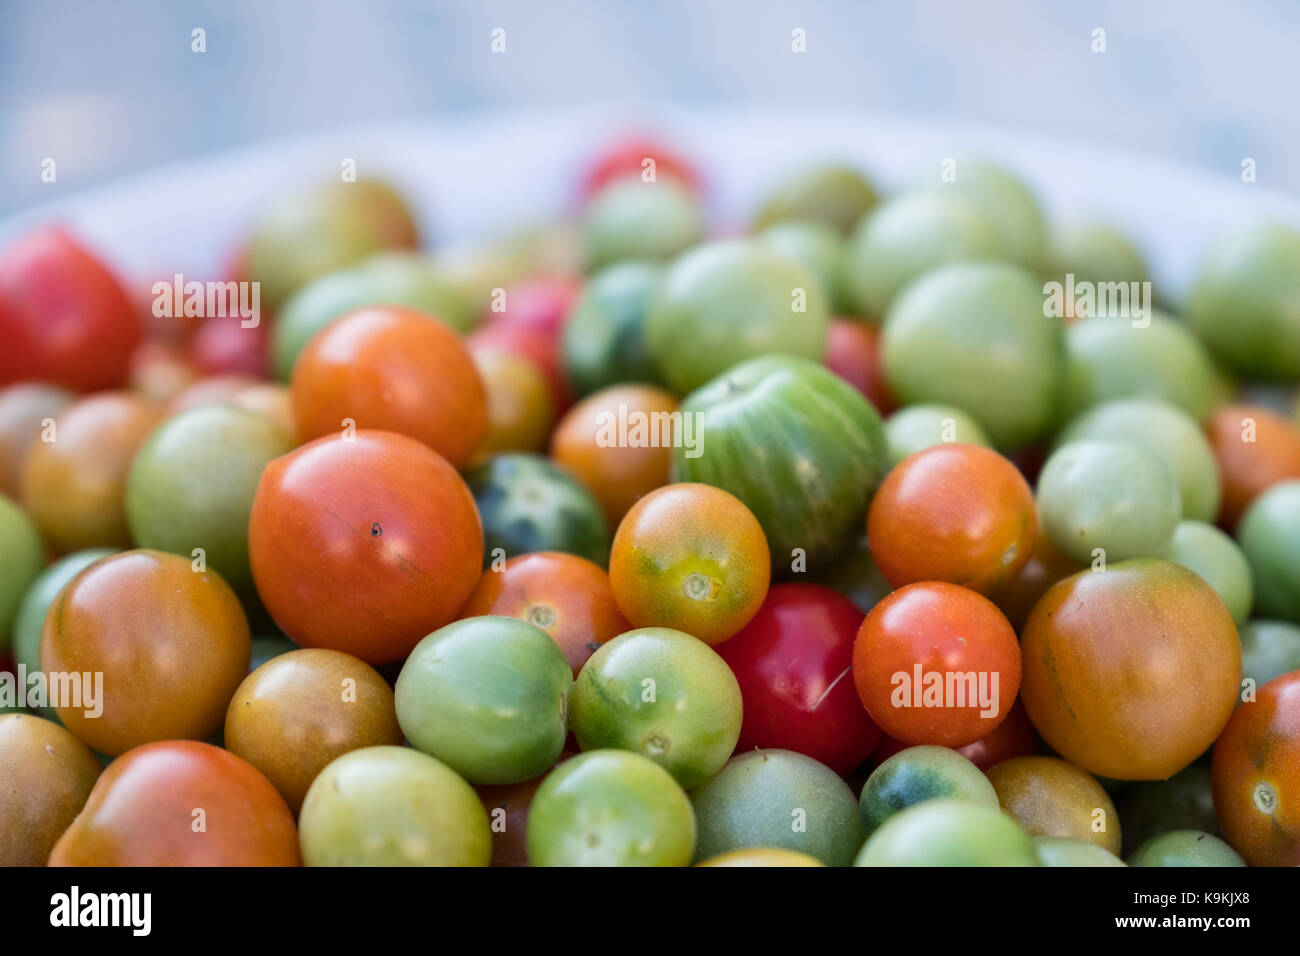 A bowl of late season mixed green and red tomatoes - Stock Image